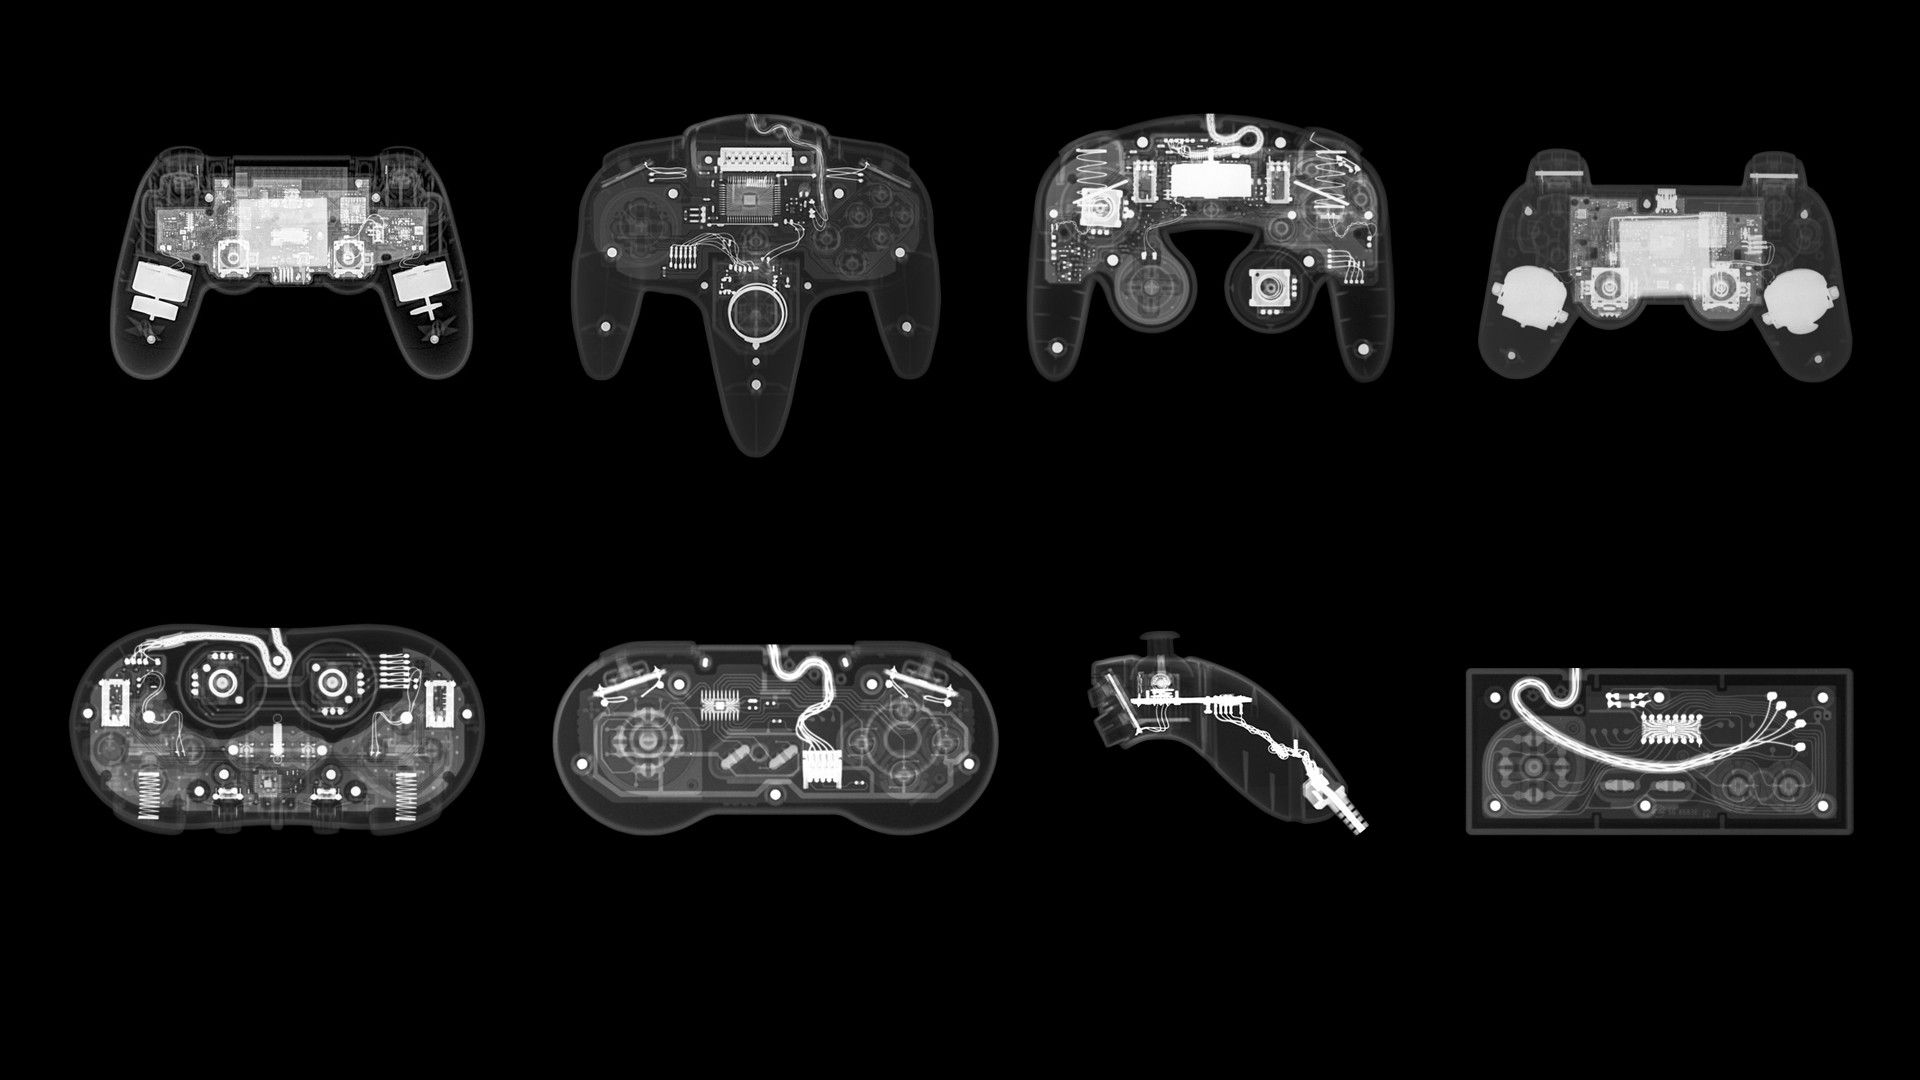 Video Game Controller Wallpaper Images 6 Gaming Wallpapers Nerdy Wallpaper Background Hd Wallpaper